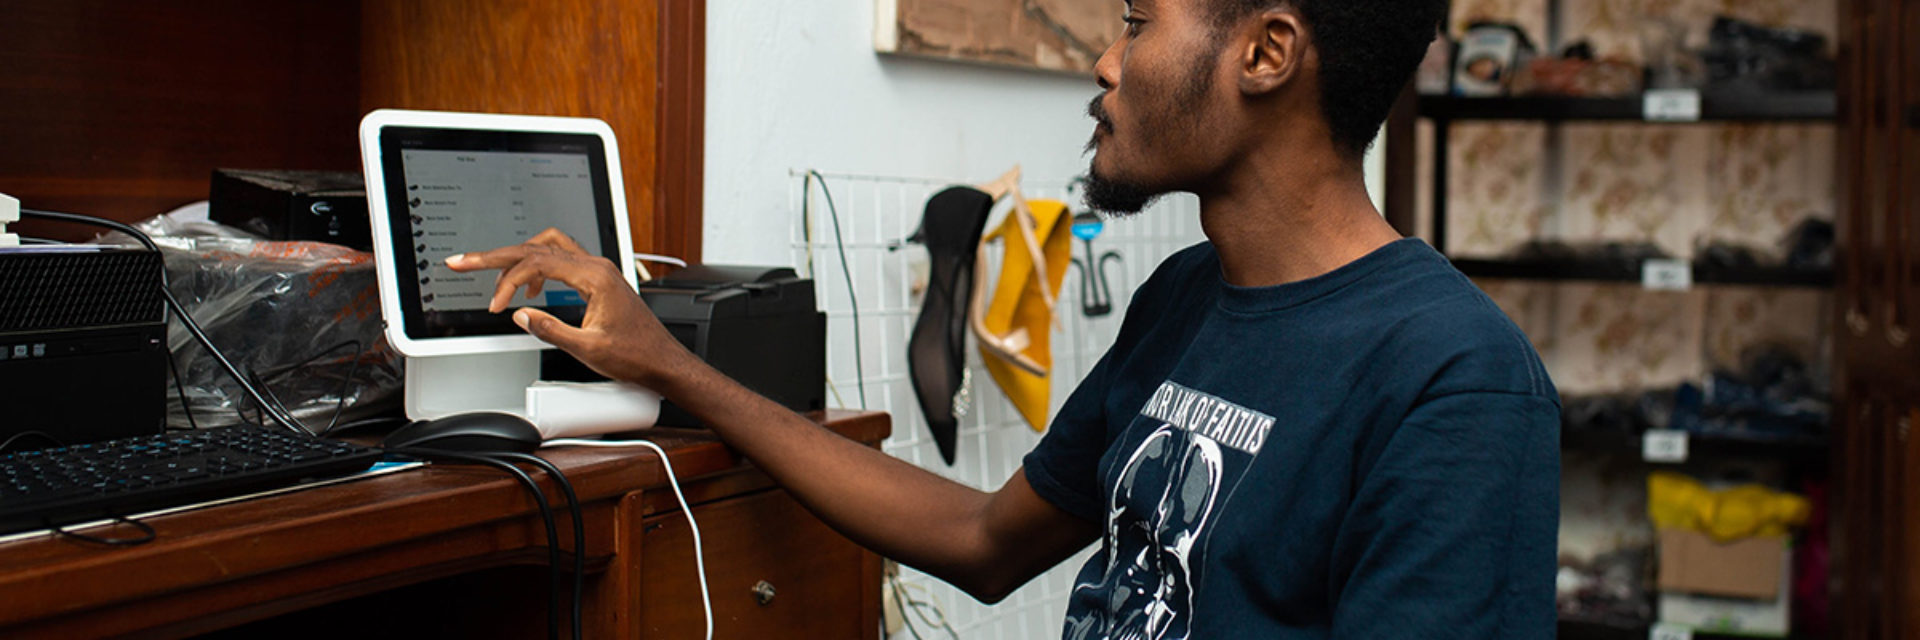 Catalyst Fund announces Inclusive Digital Commerce Accelerator to support MSEs in Ghana